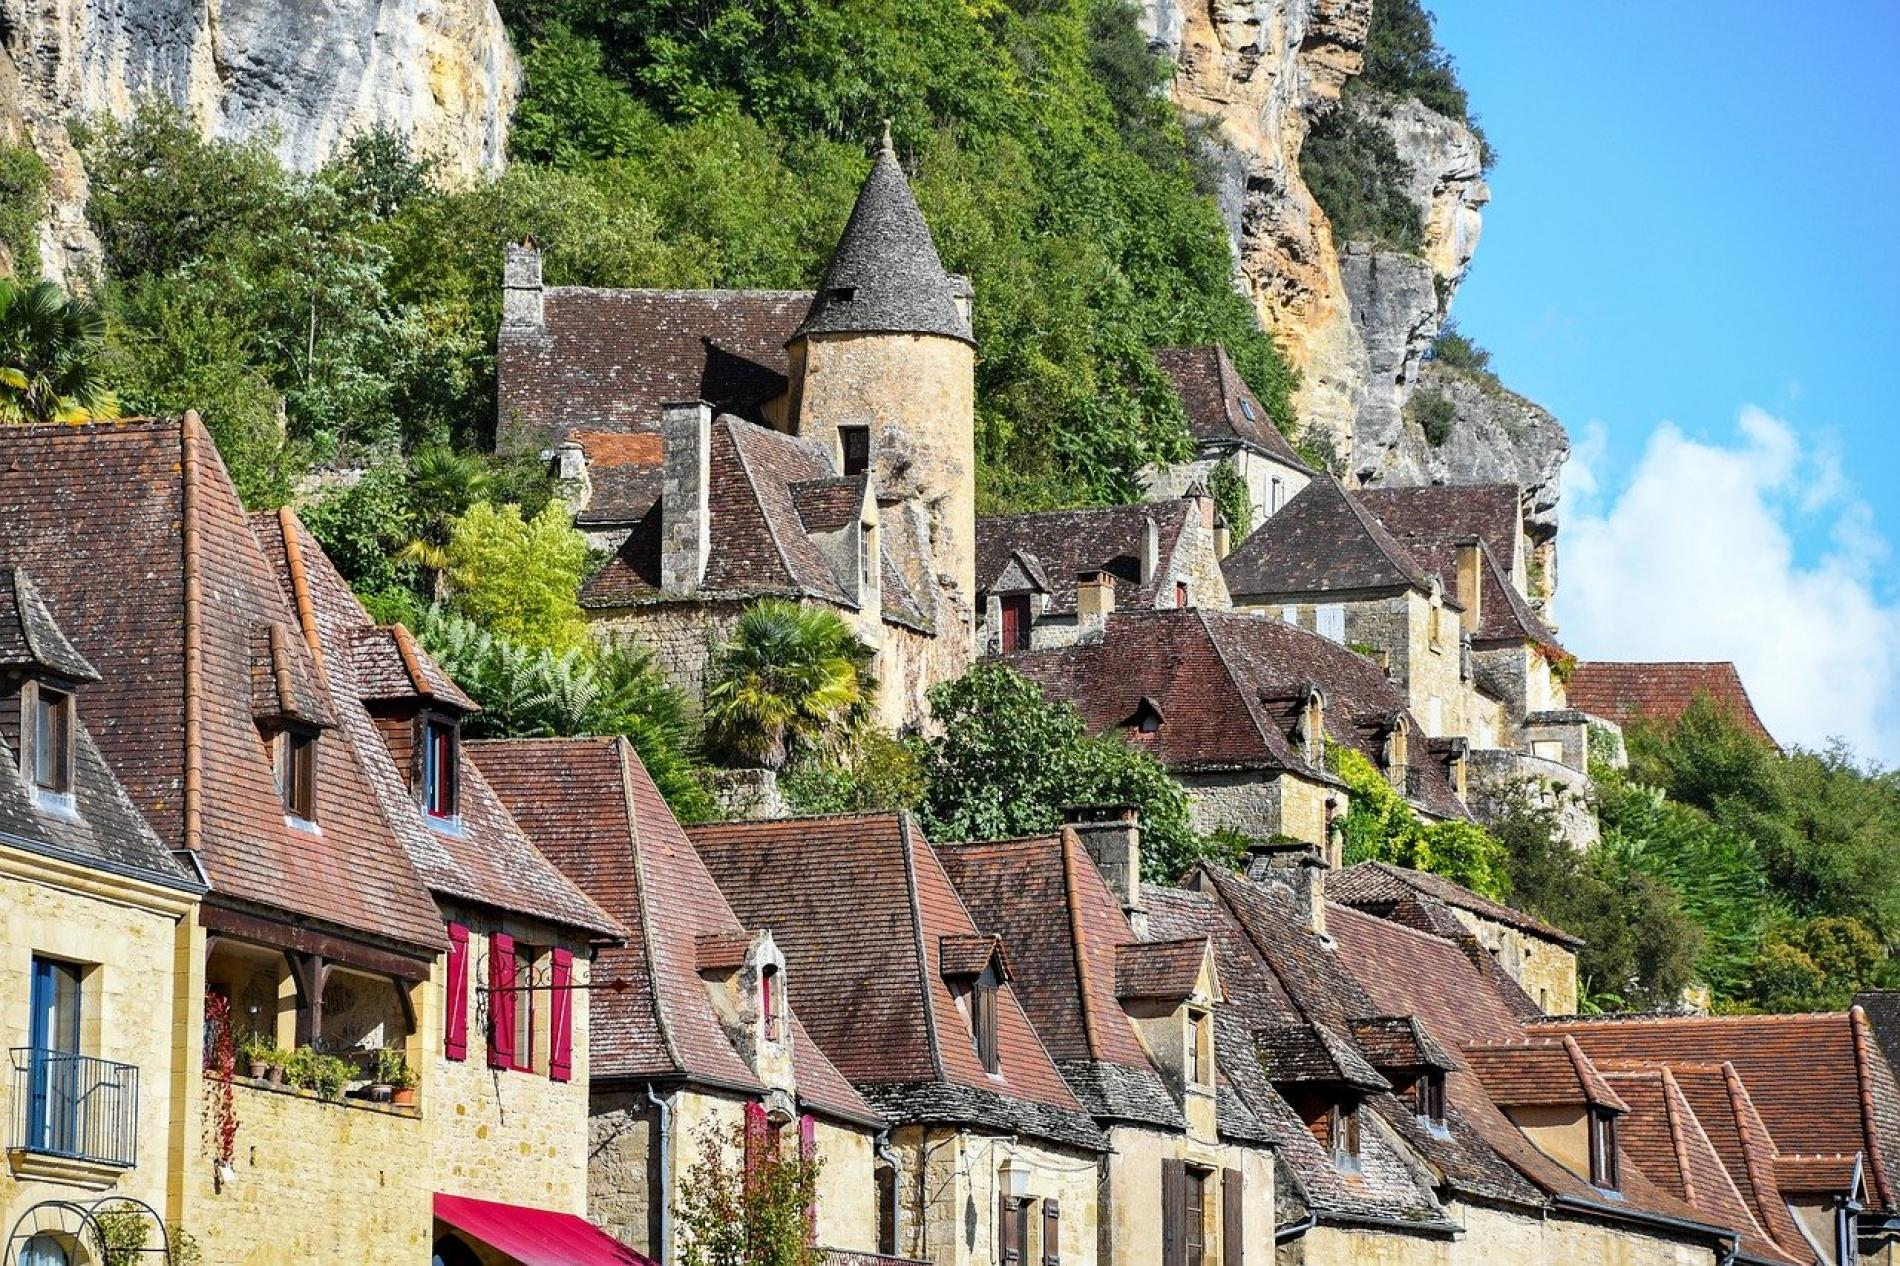 La Roque-Gageac built between cliff and La Dordogne